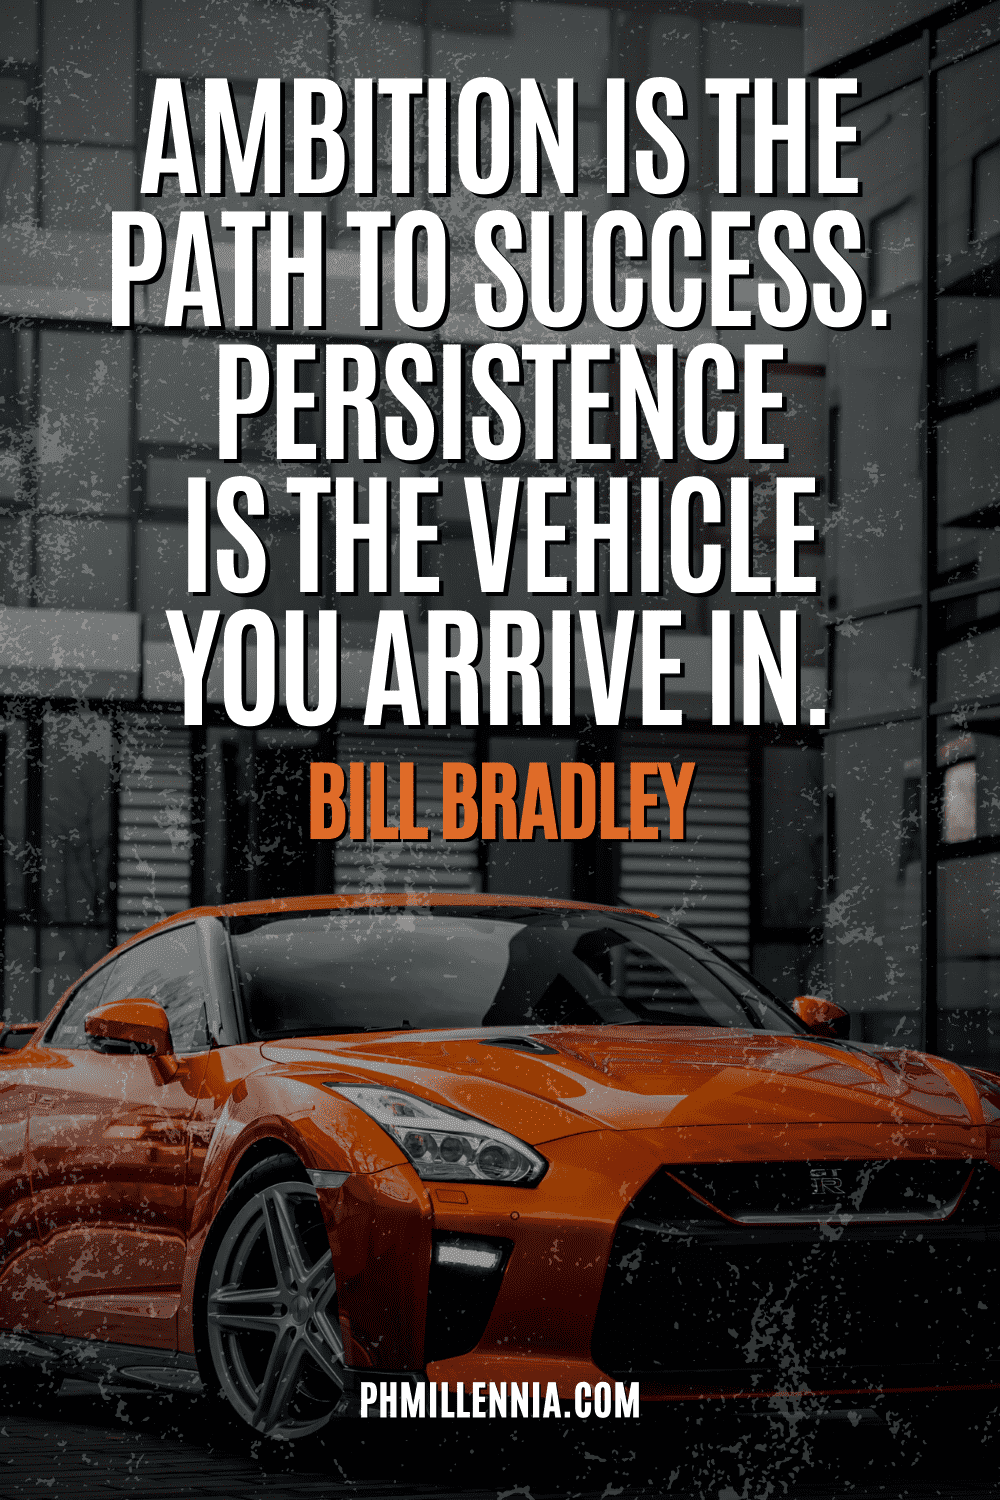 A graphic containing text on an image of a sports car parked in front of buildings